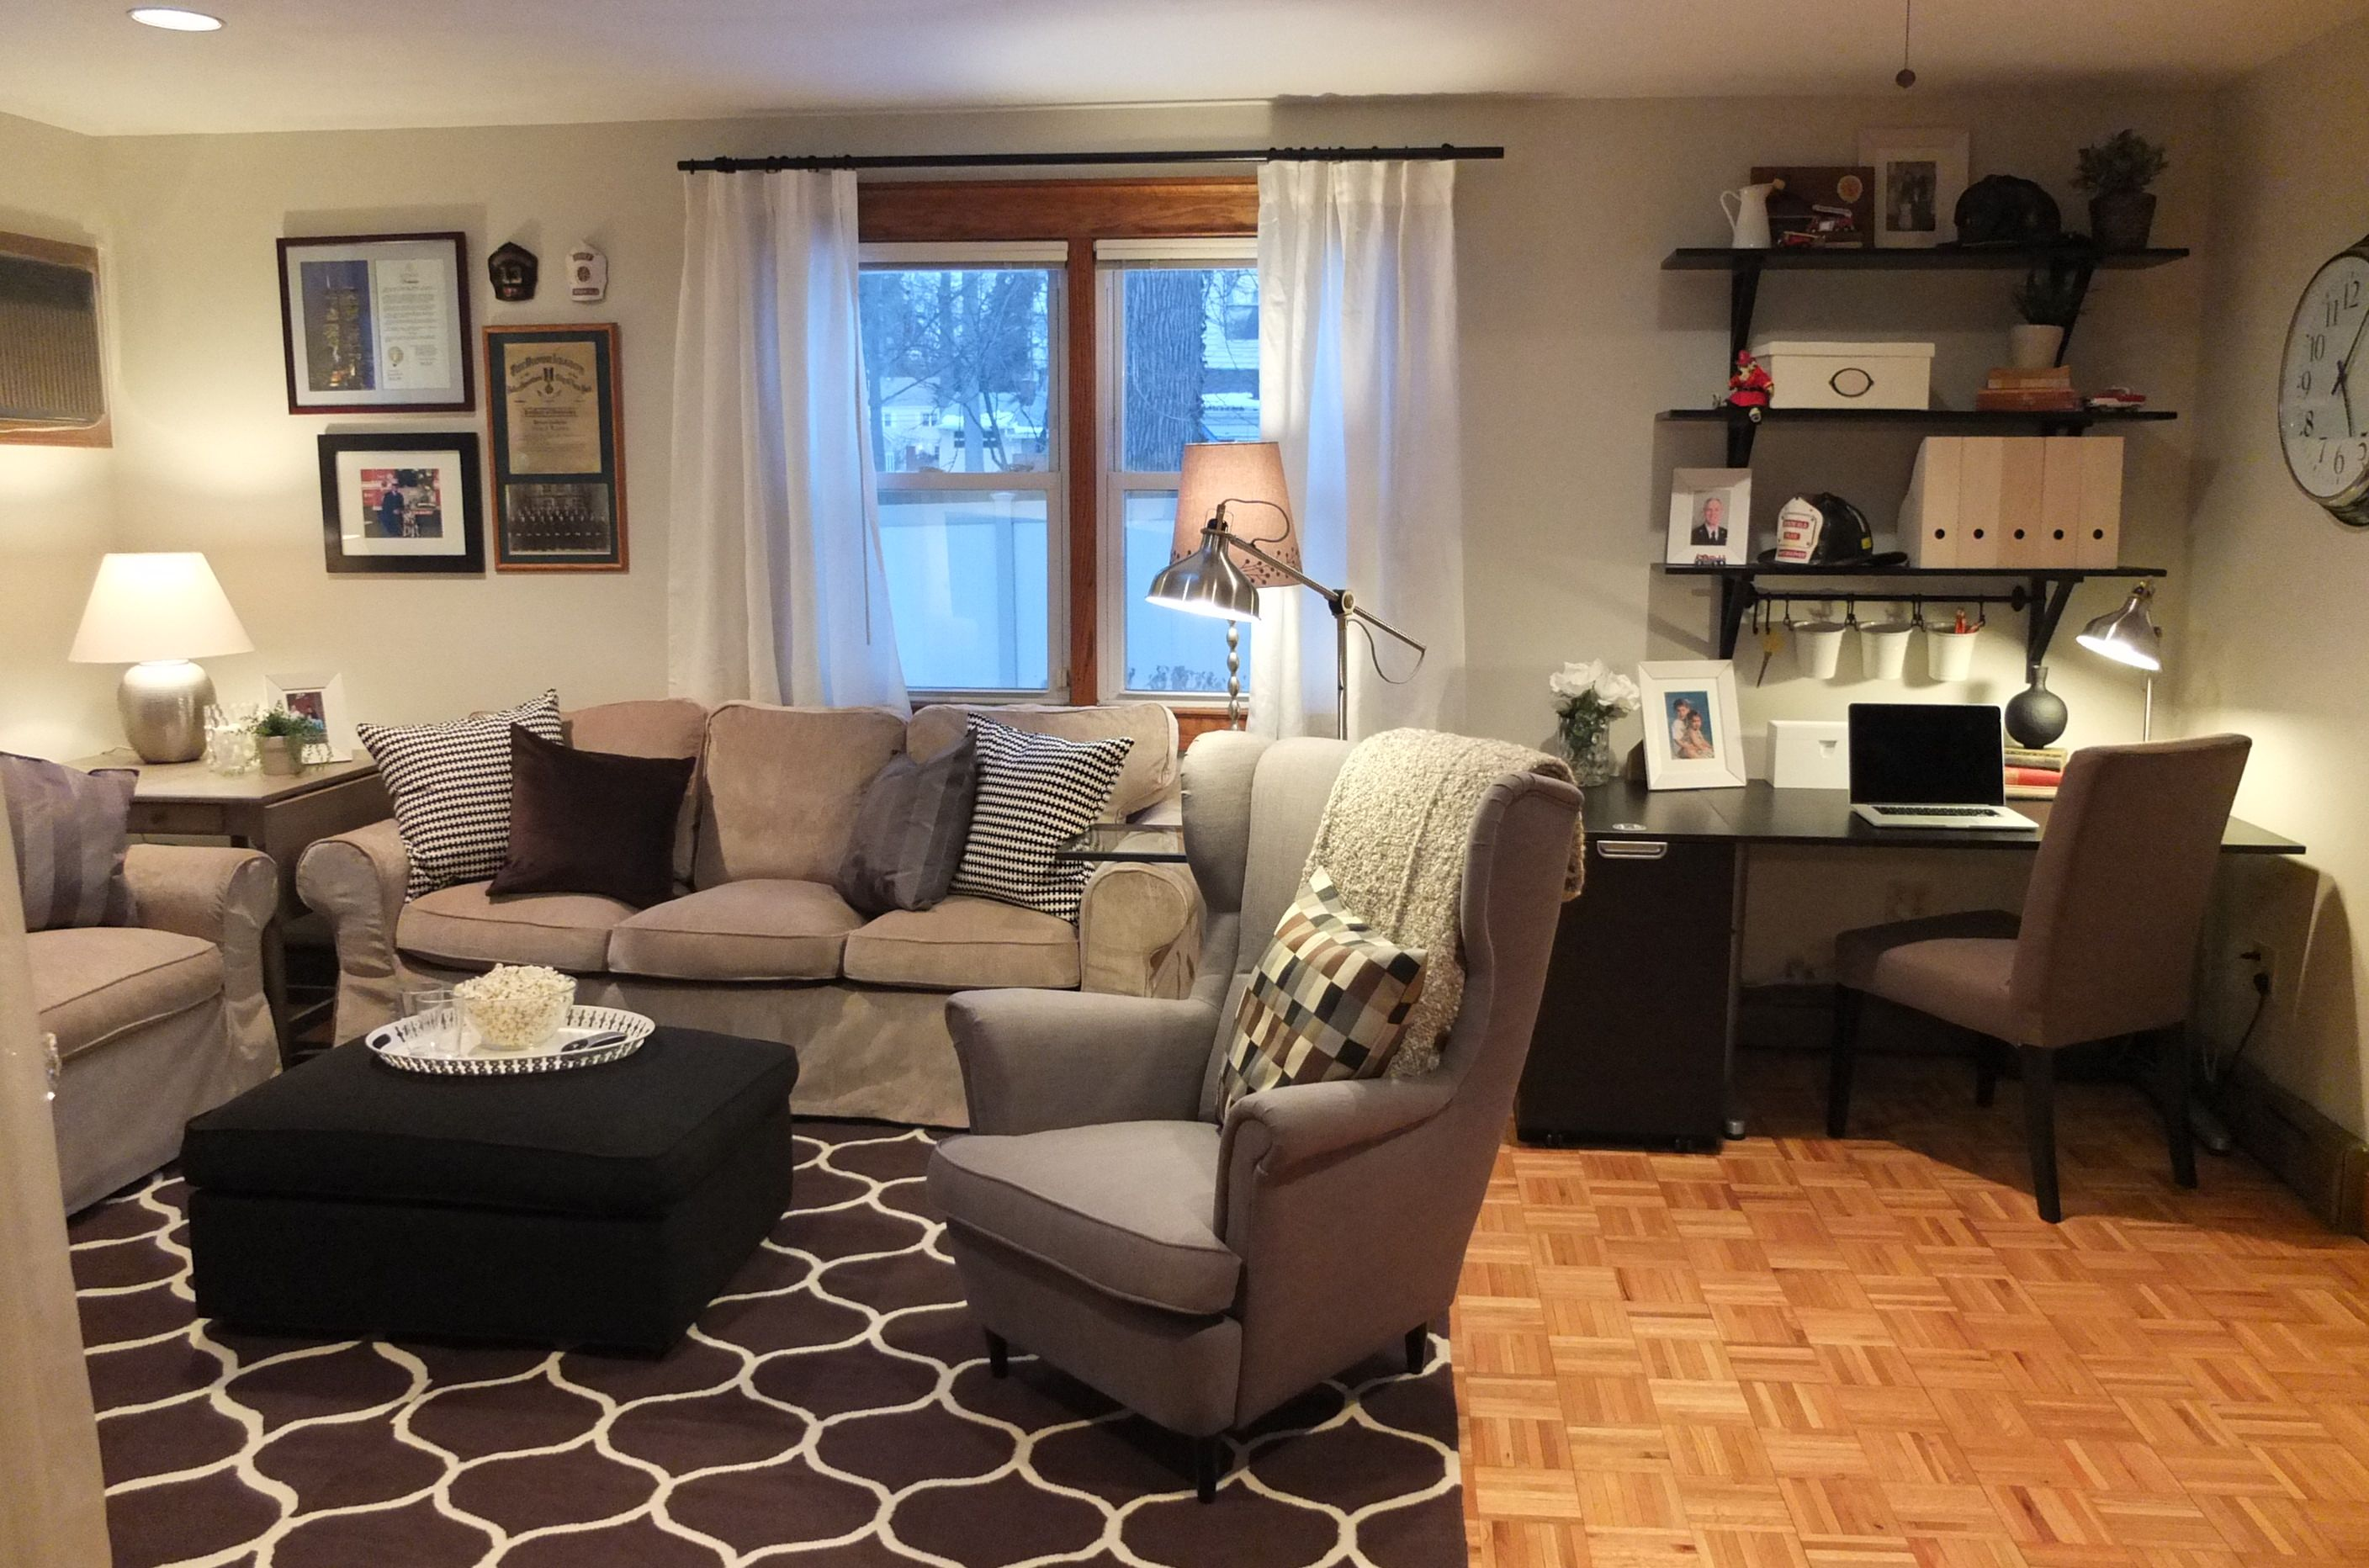 Living Room Office Home Furniture Sets 22 Modern Design Ideas Sweet Check Out How The Ikea Tour Squad Turned An Underused Back Into A True Family In This Makeover